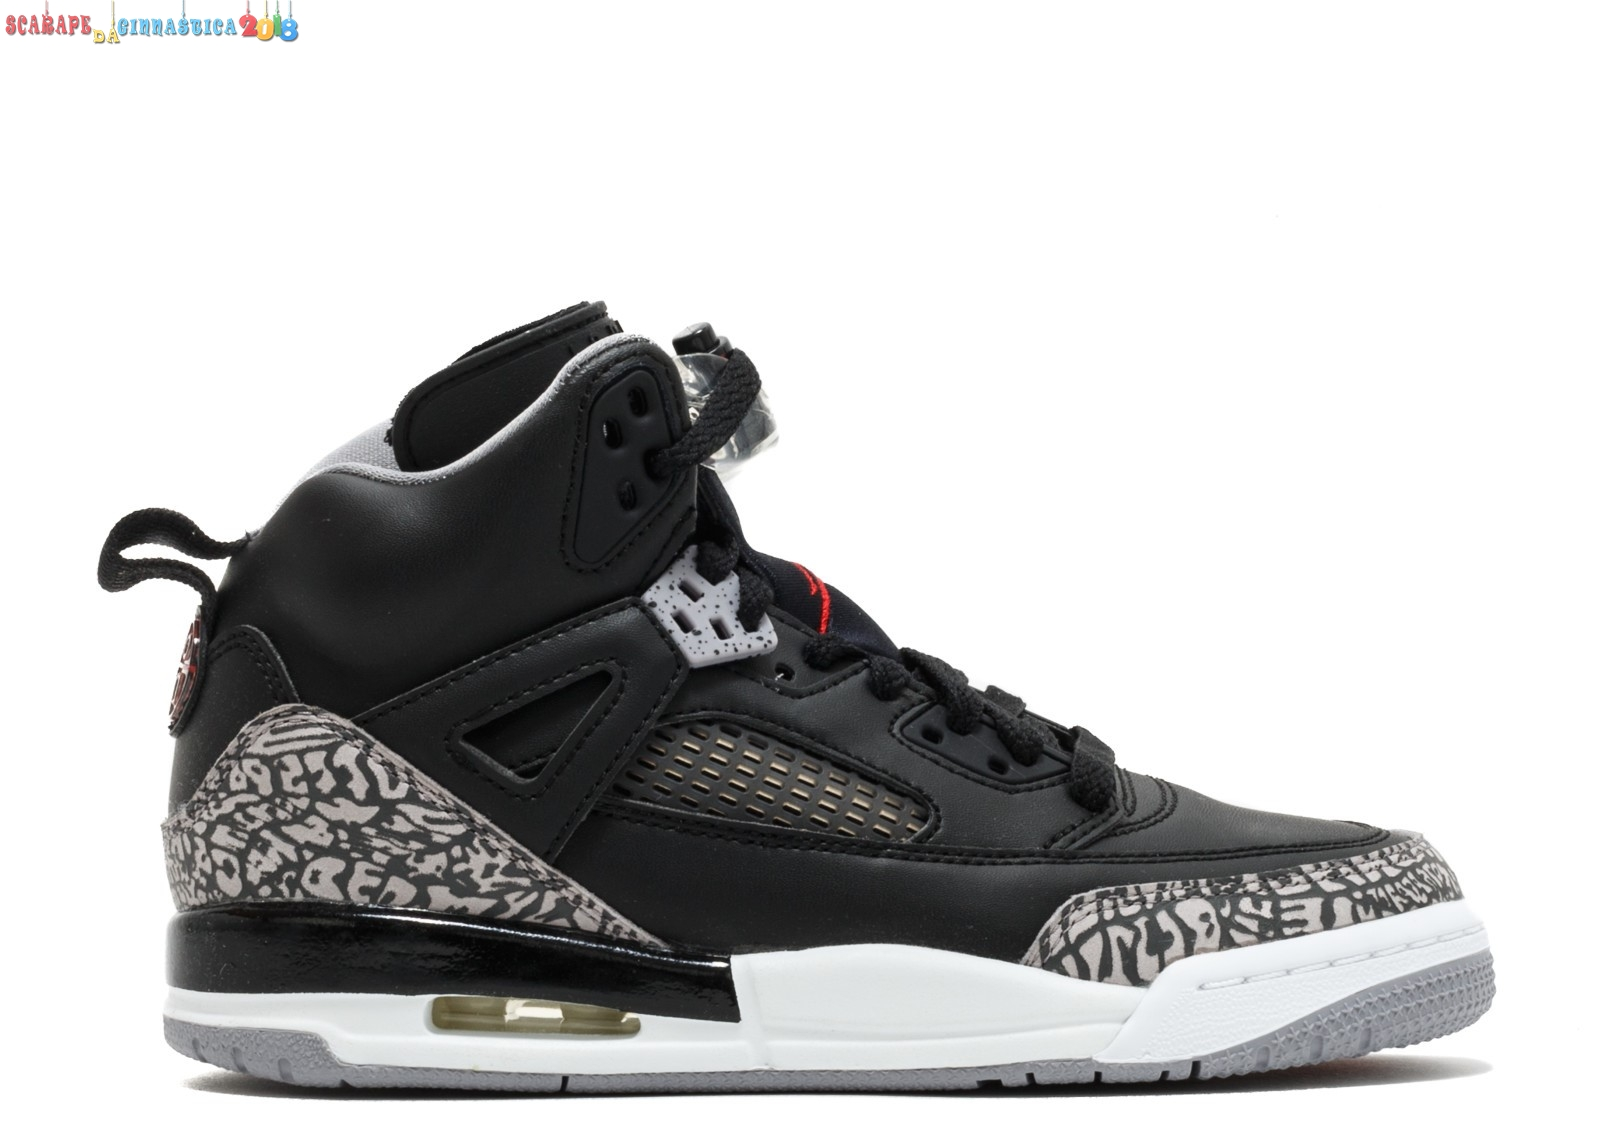 Acquisto Air Jordan Spiz'Ike Bg Nero Gris (317321-034) Replica